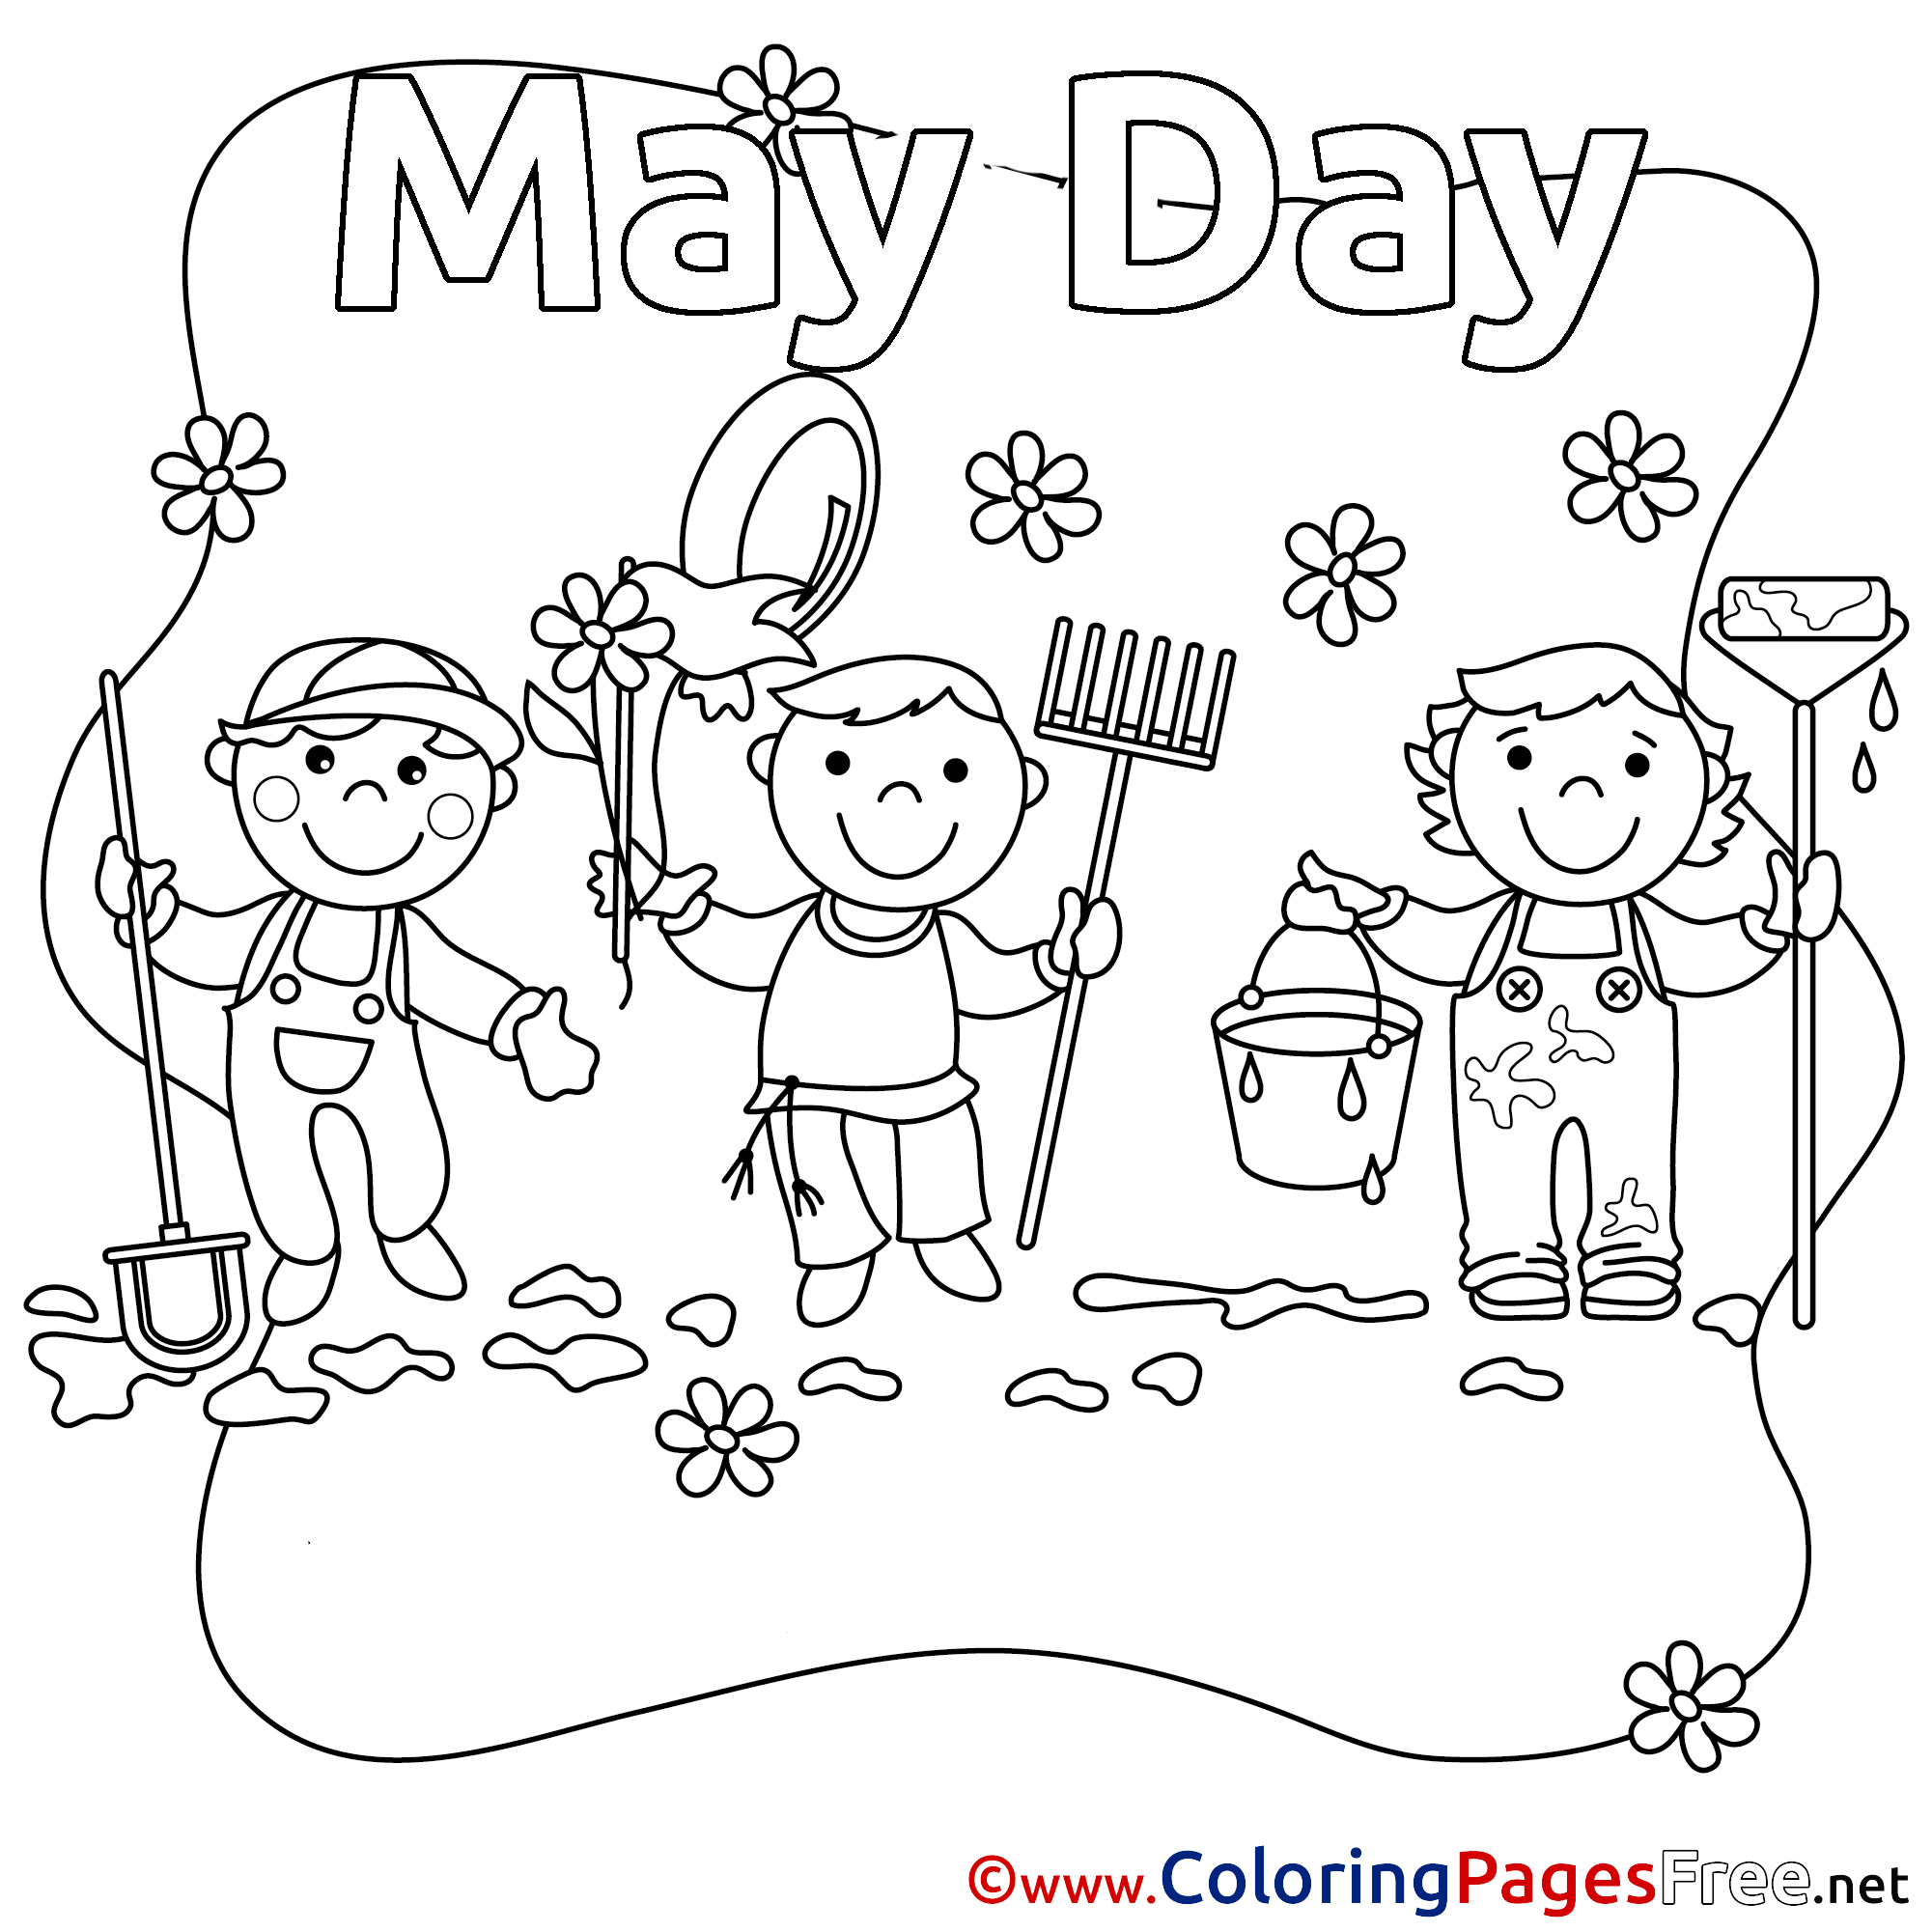 Worksheet. May Day download Workers Day Coloring Pages